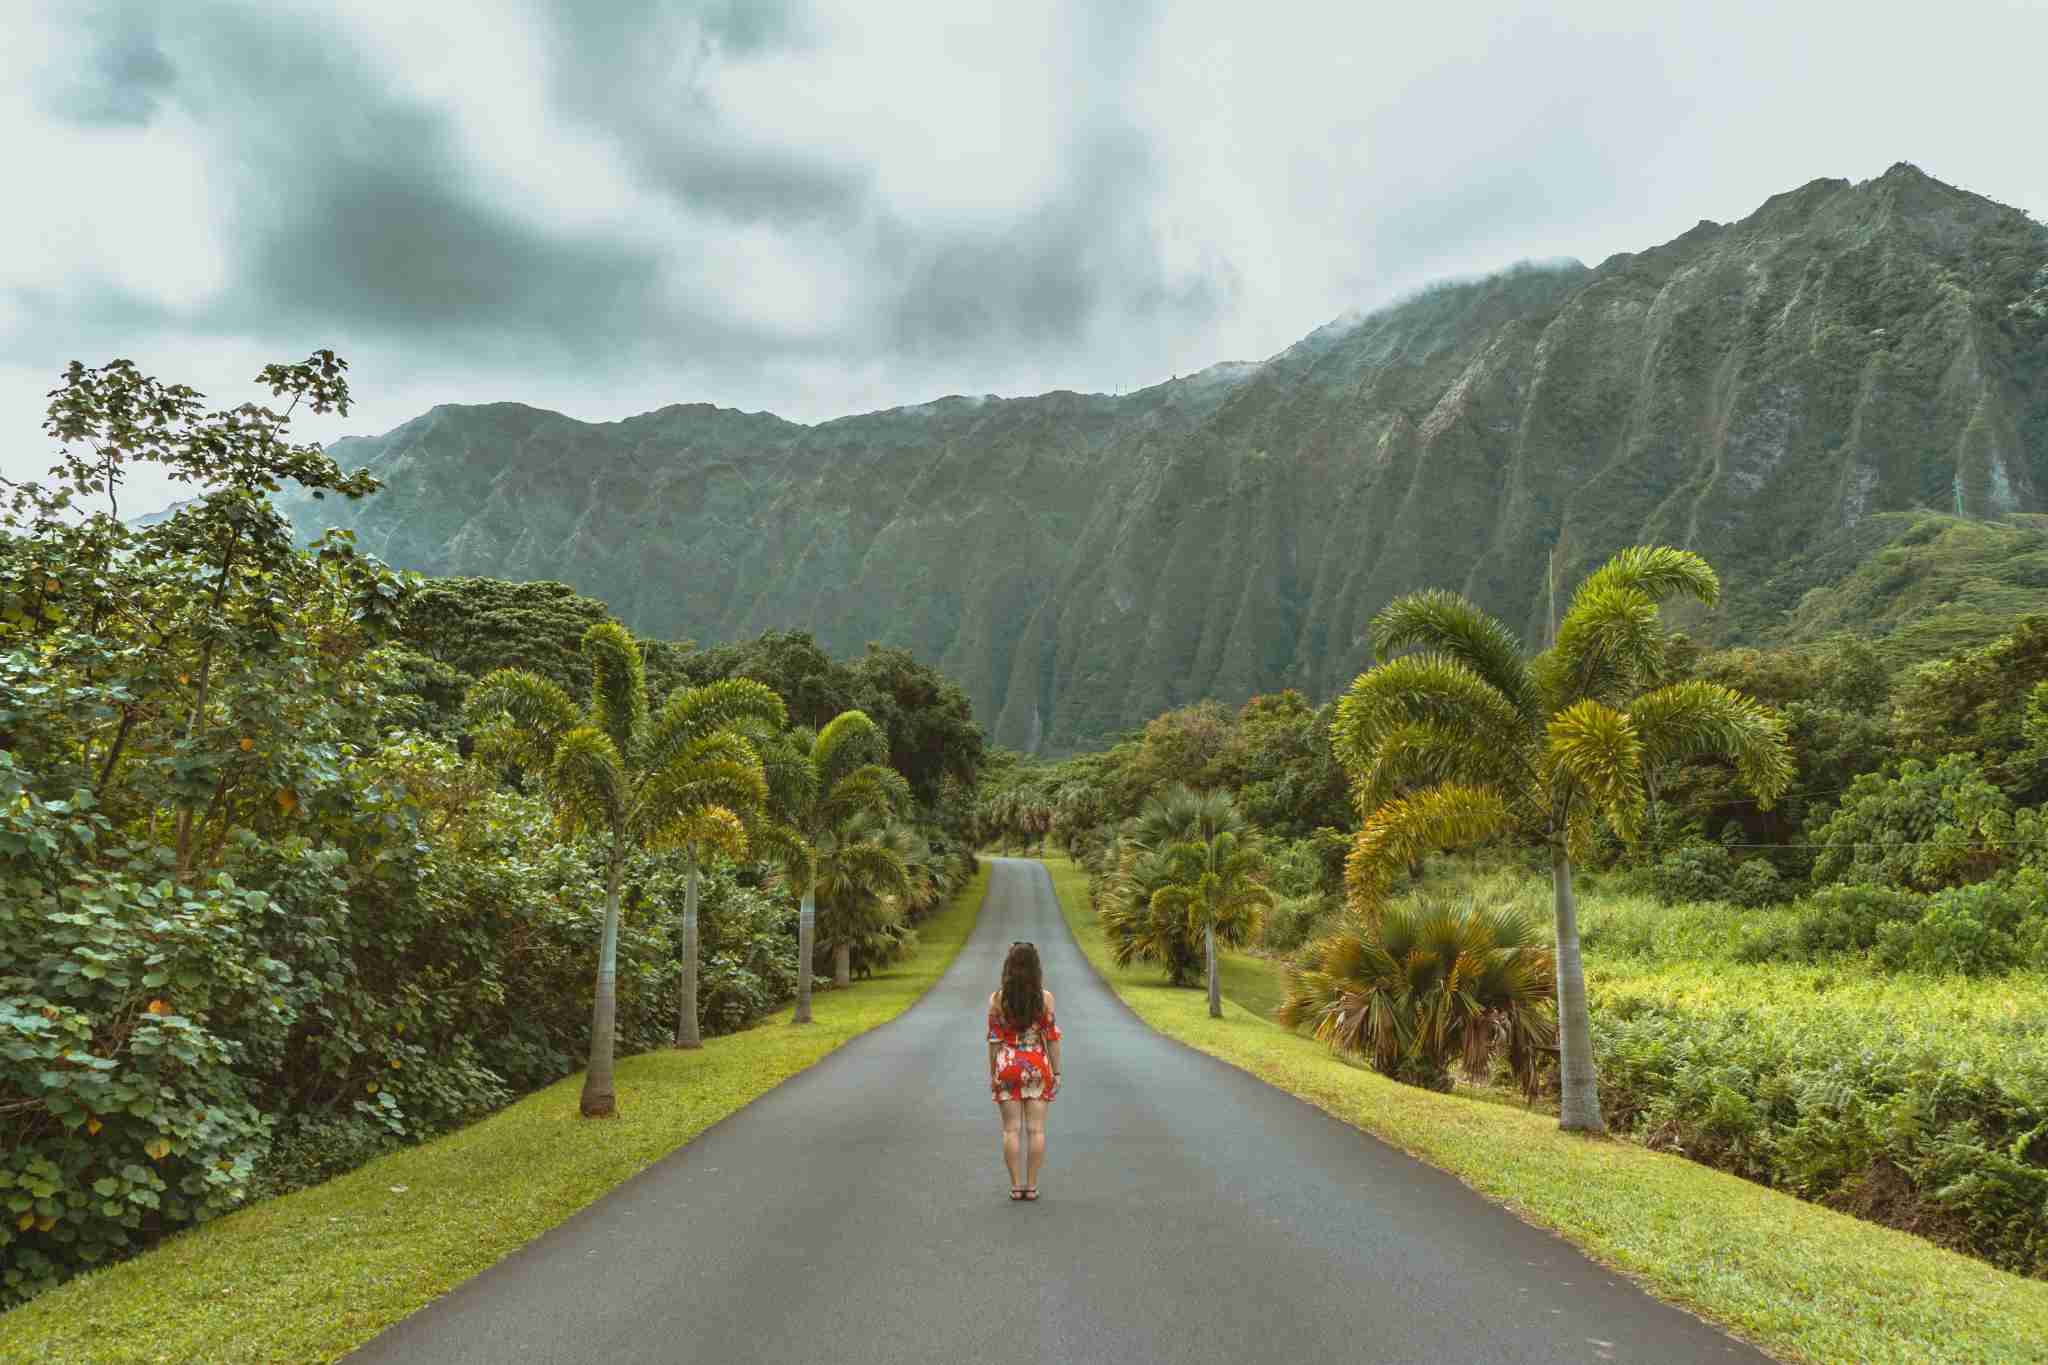 Budget travelers, rejoice! Southwest now offers an affordable option for those planning trips to Hawaii. (Photo by Wild Away / Unsplash)